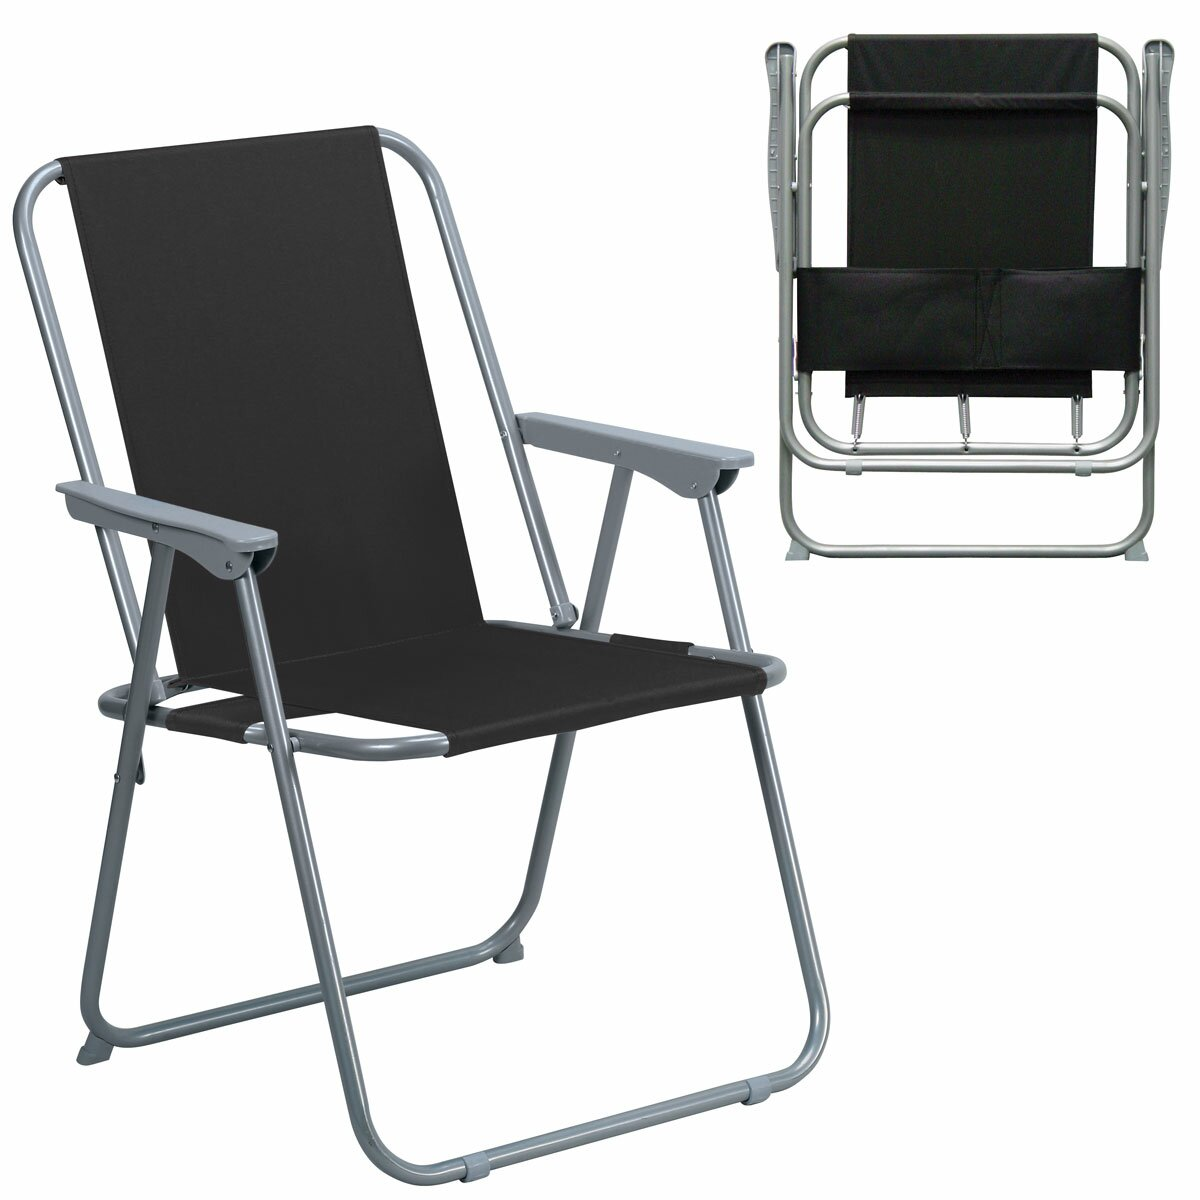 preferred nation beach chair reviews wayfair. Black Bedroom Furniture Sets. Home Design Ideas